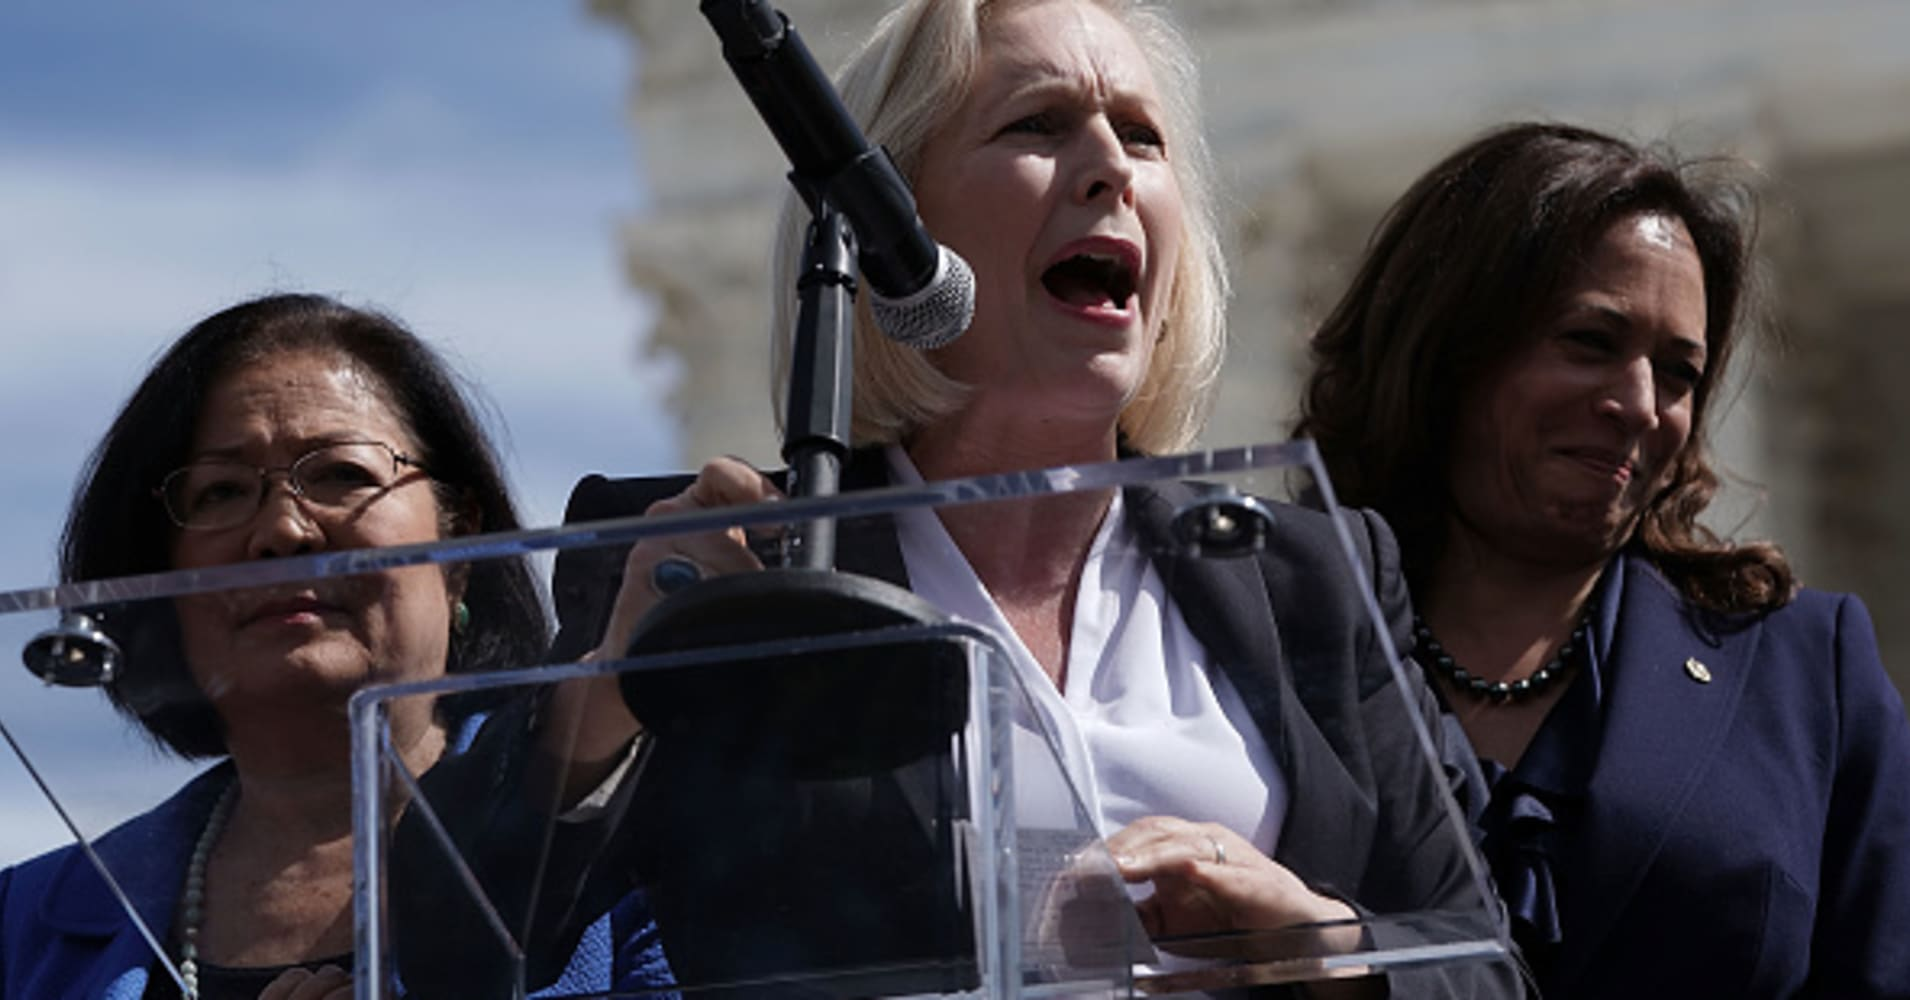 U.S. Sen. Kirsten Gillibrand (D-NY) speaks as Sen. Mazie Hirono (D-HI) (L) and Sen. Kamala Harris (D-CA) listen during a rally in front of the U.S. Supreme Court September 28, 2018 in Washington, DC.